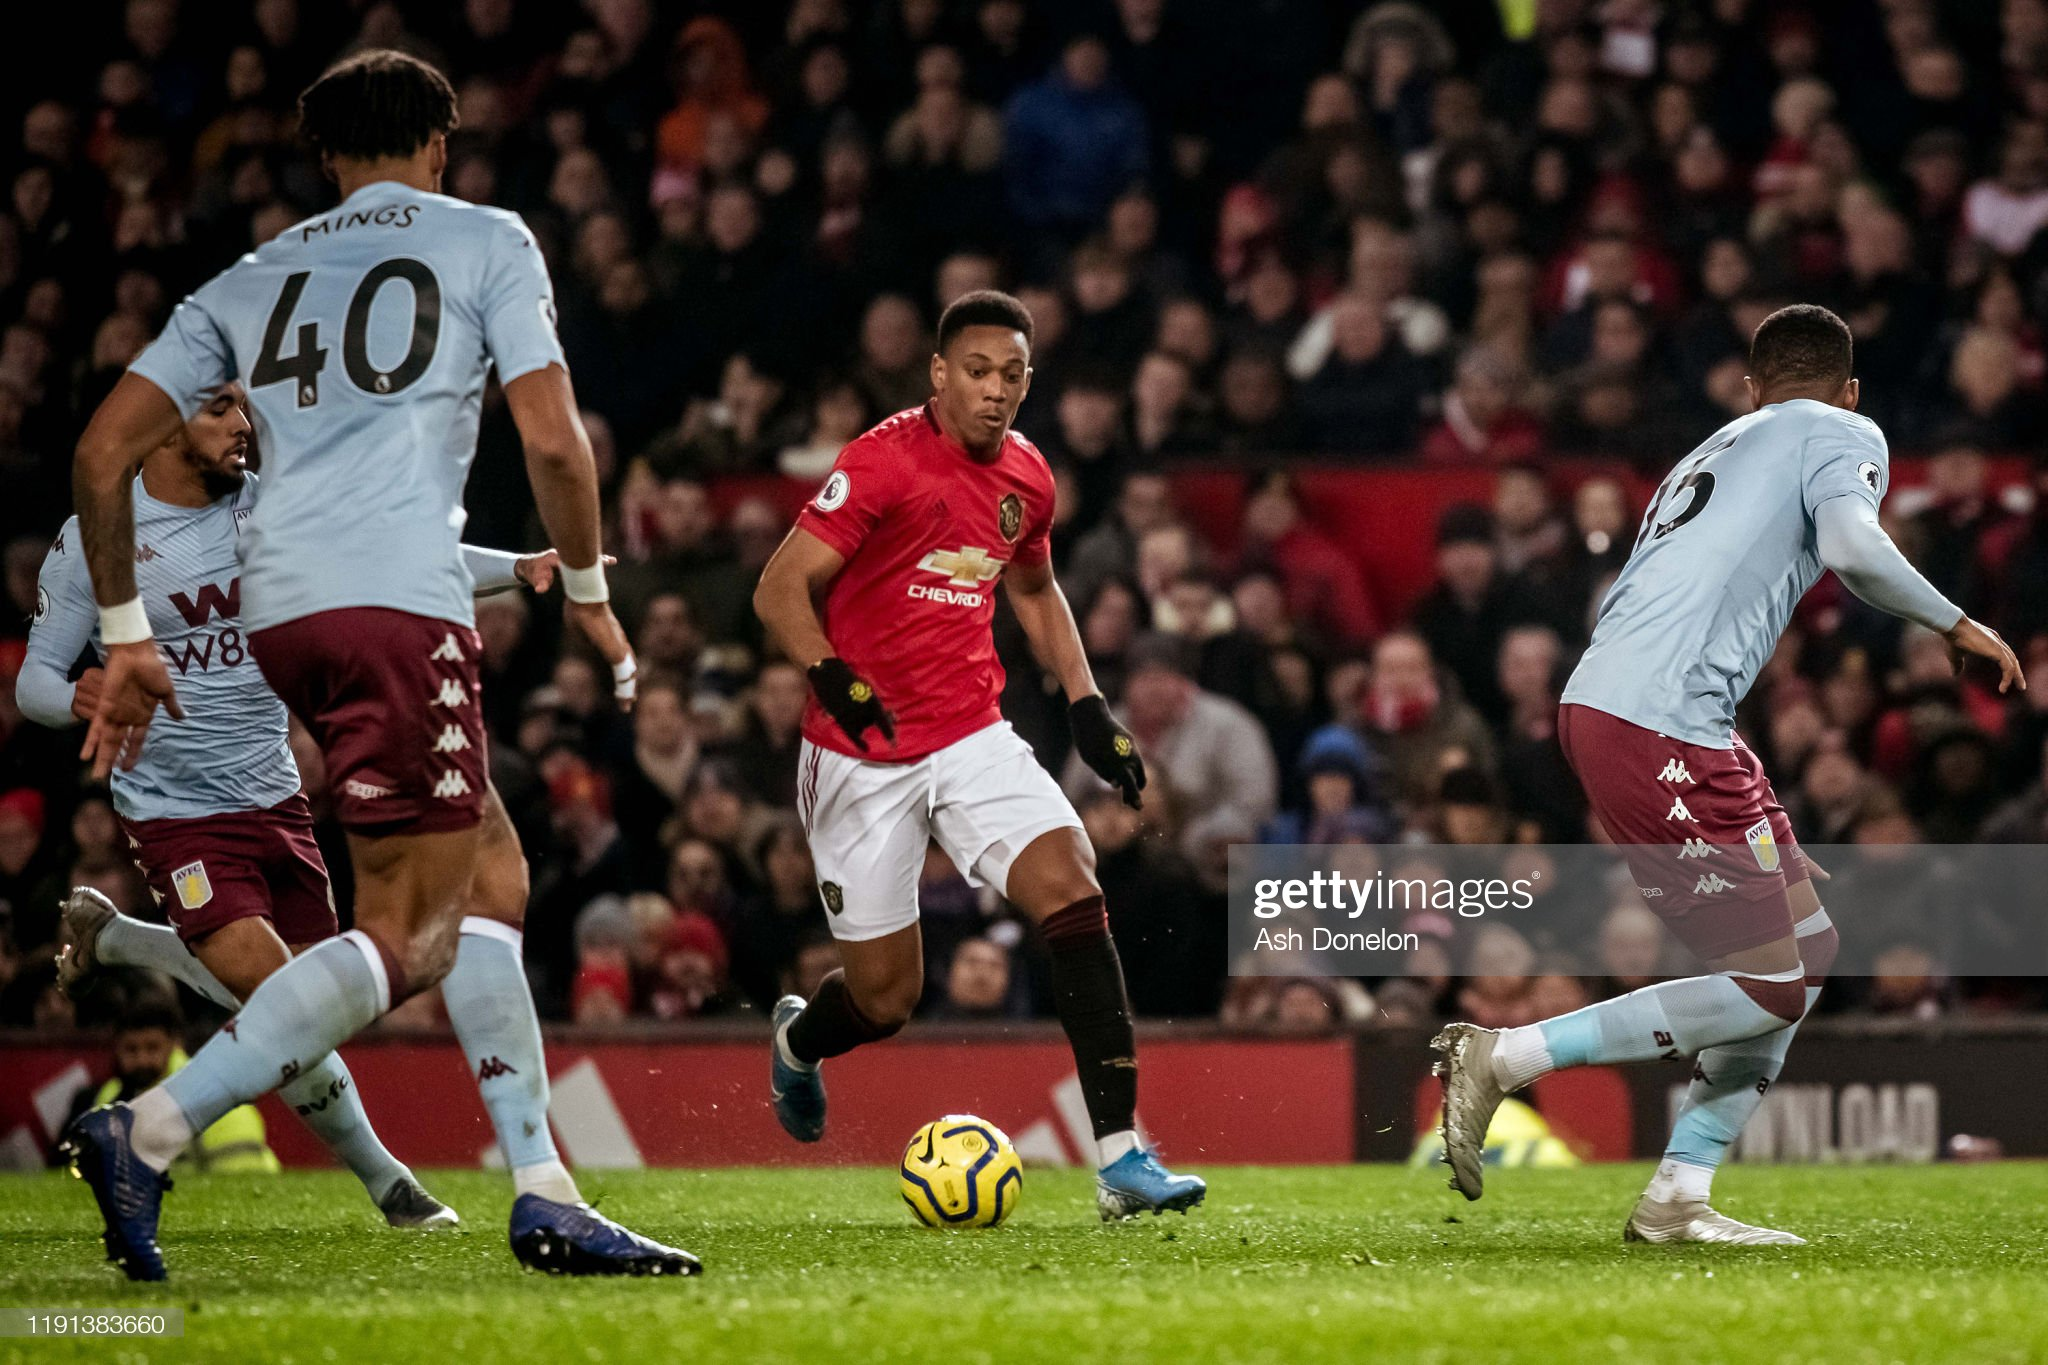 Aston Villa vs Manchester United Preview, prediction and odds